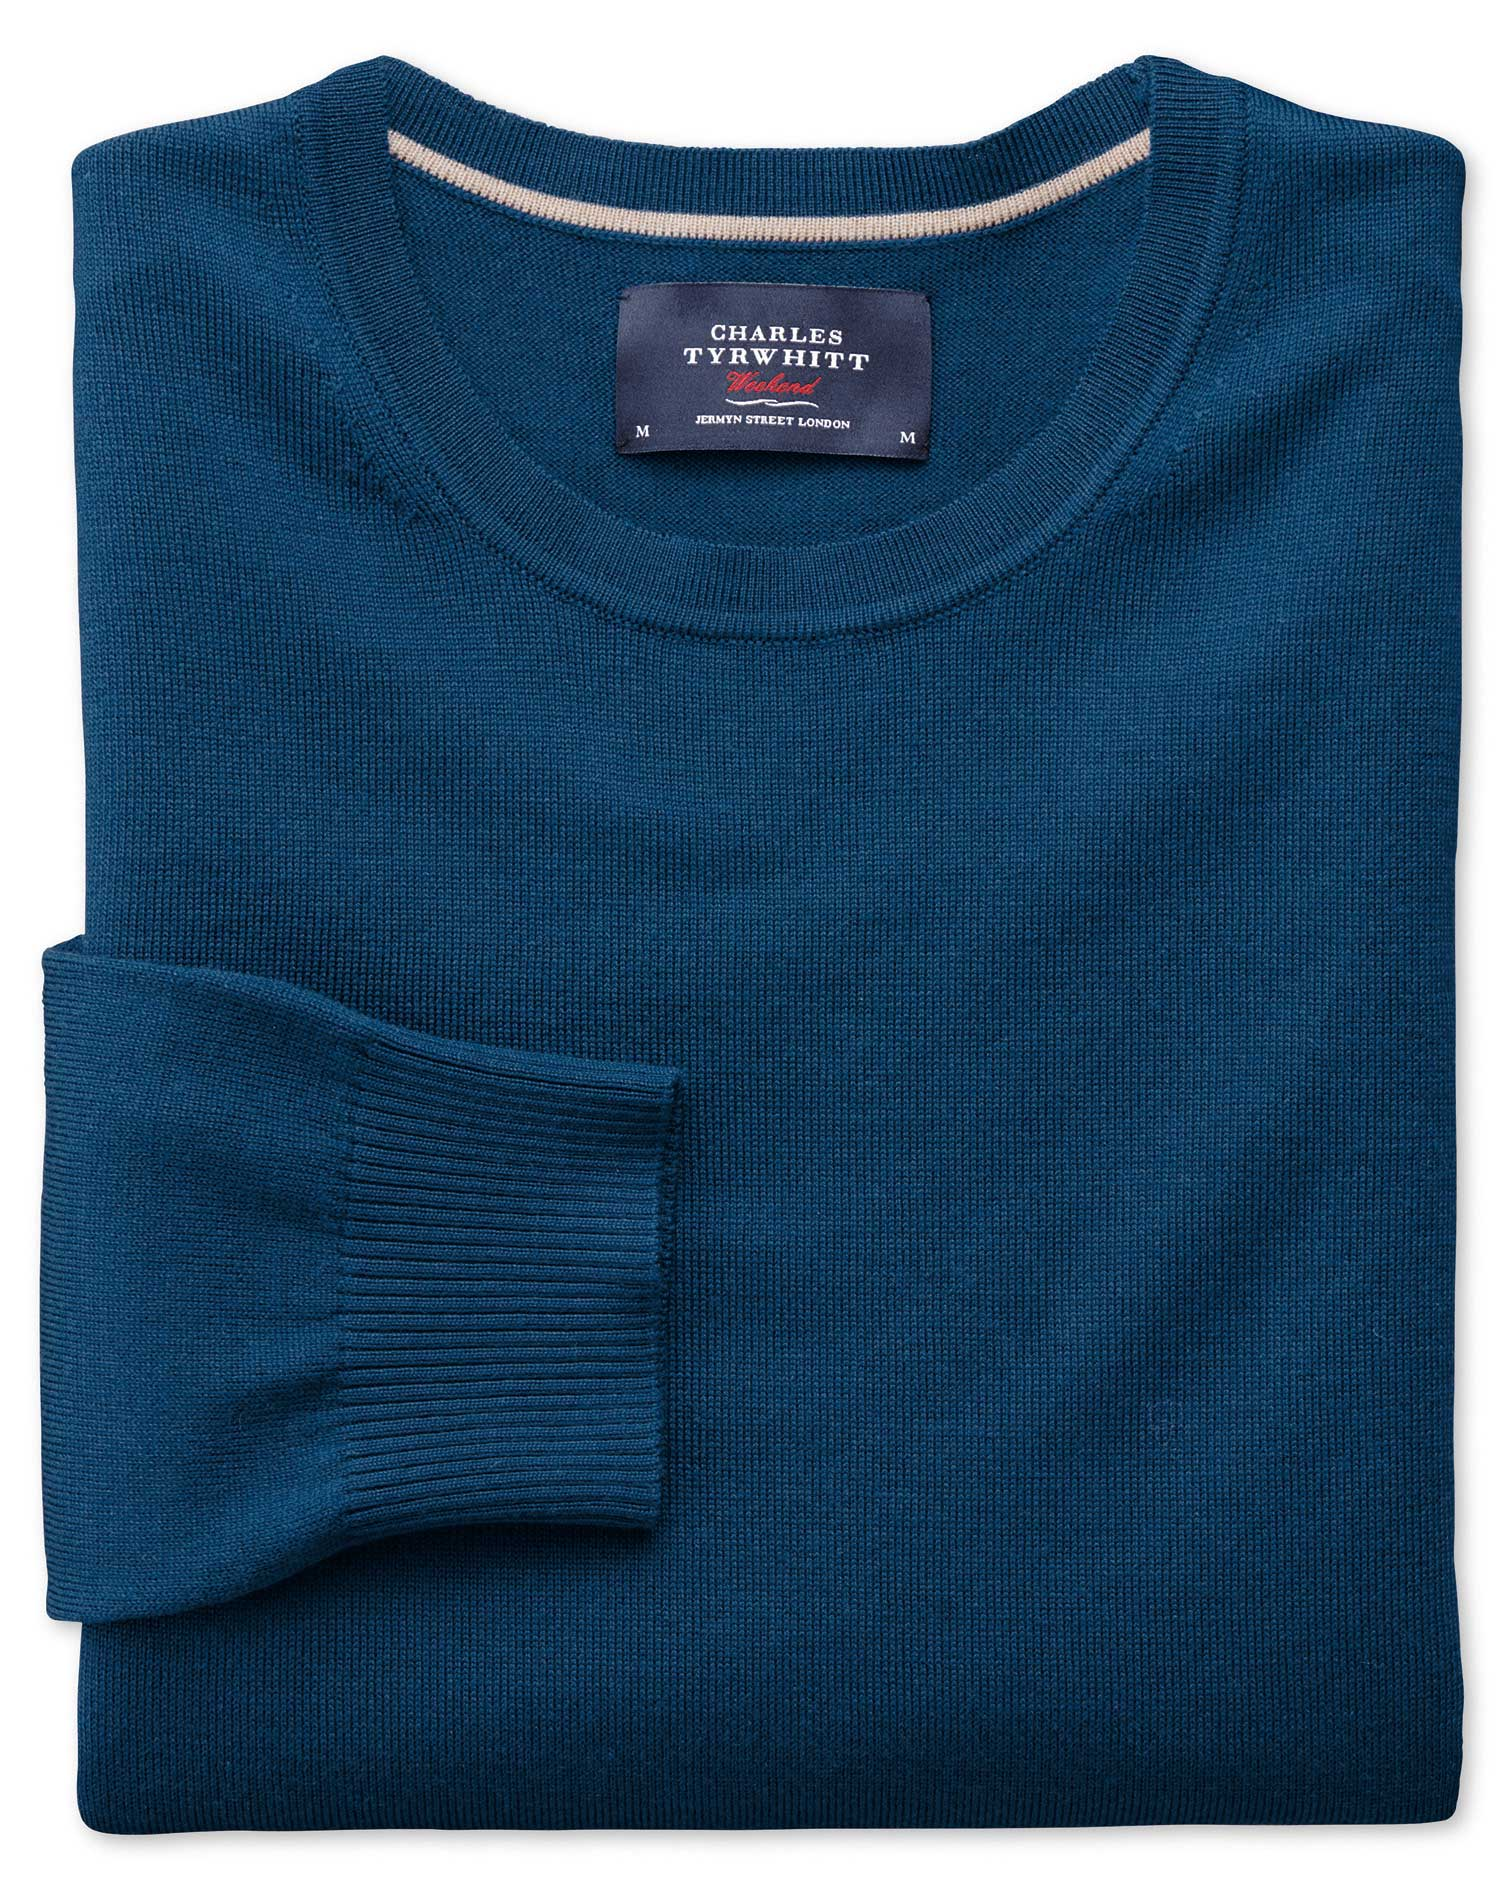 Blue Merino Wool Crew Neck Jumper Size XL by Charles Tyrwhitt